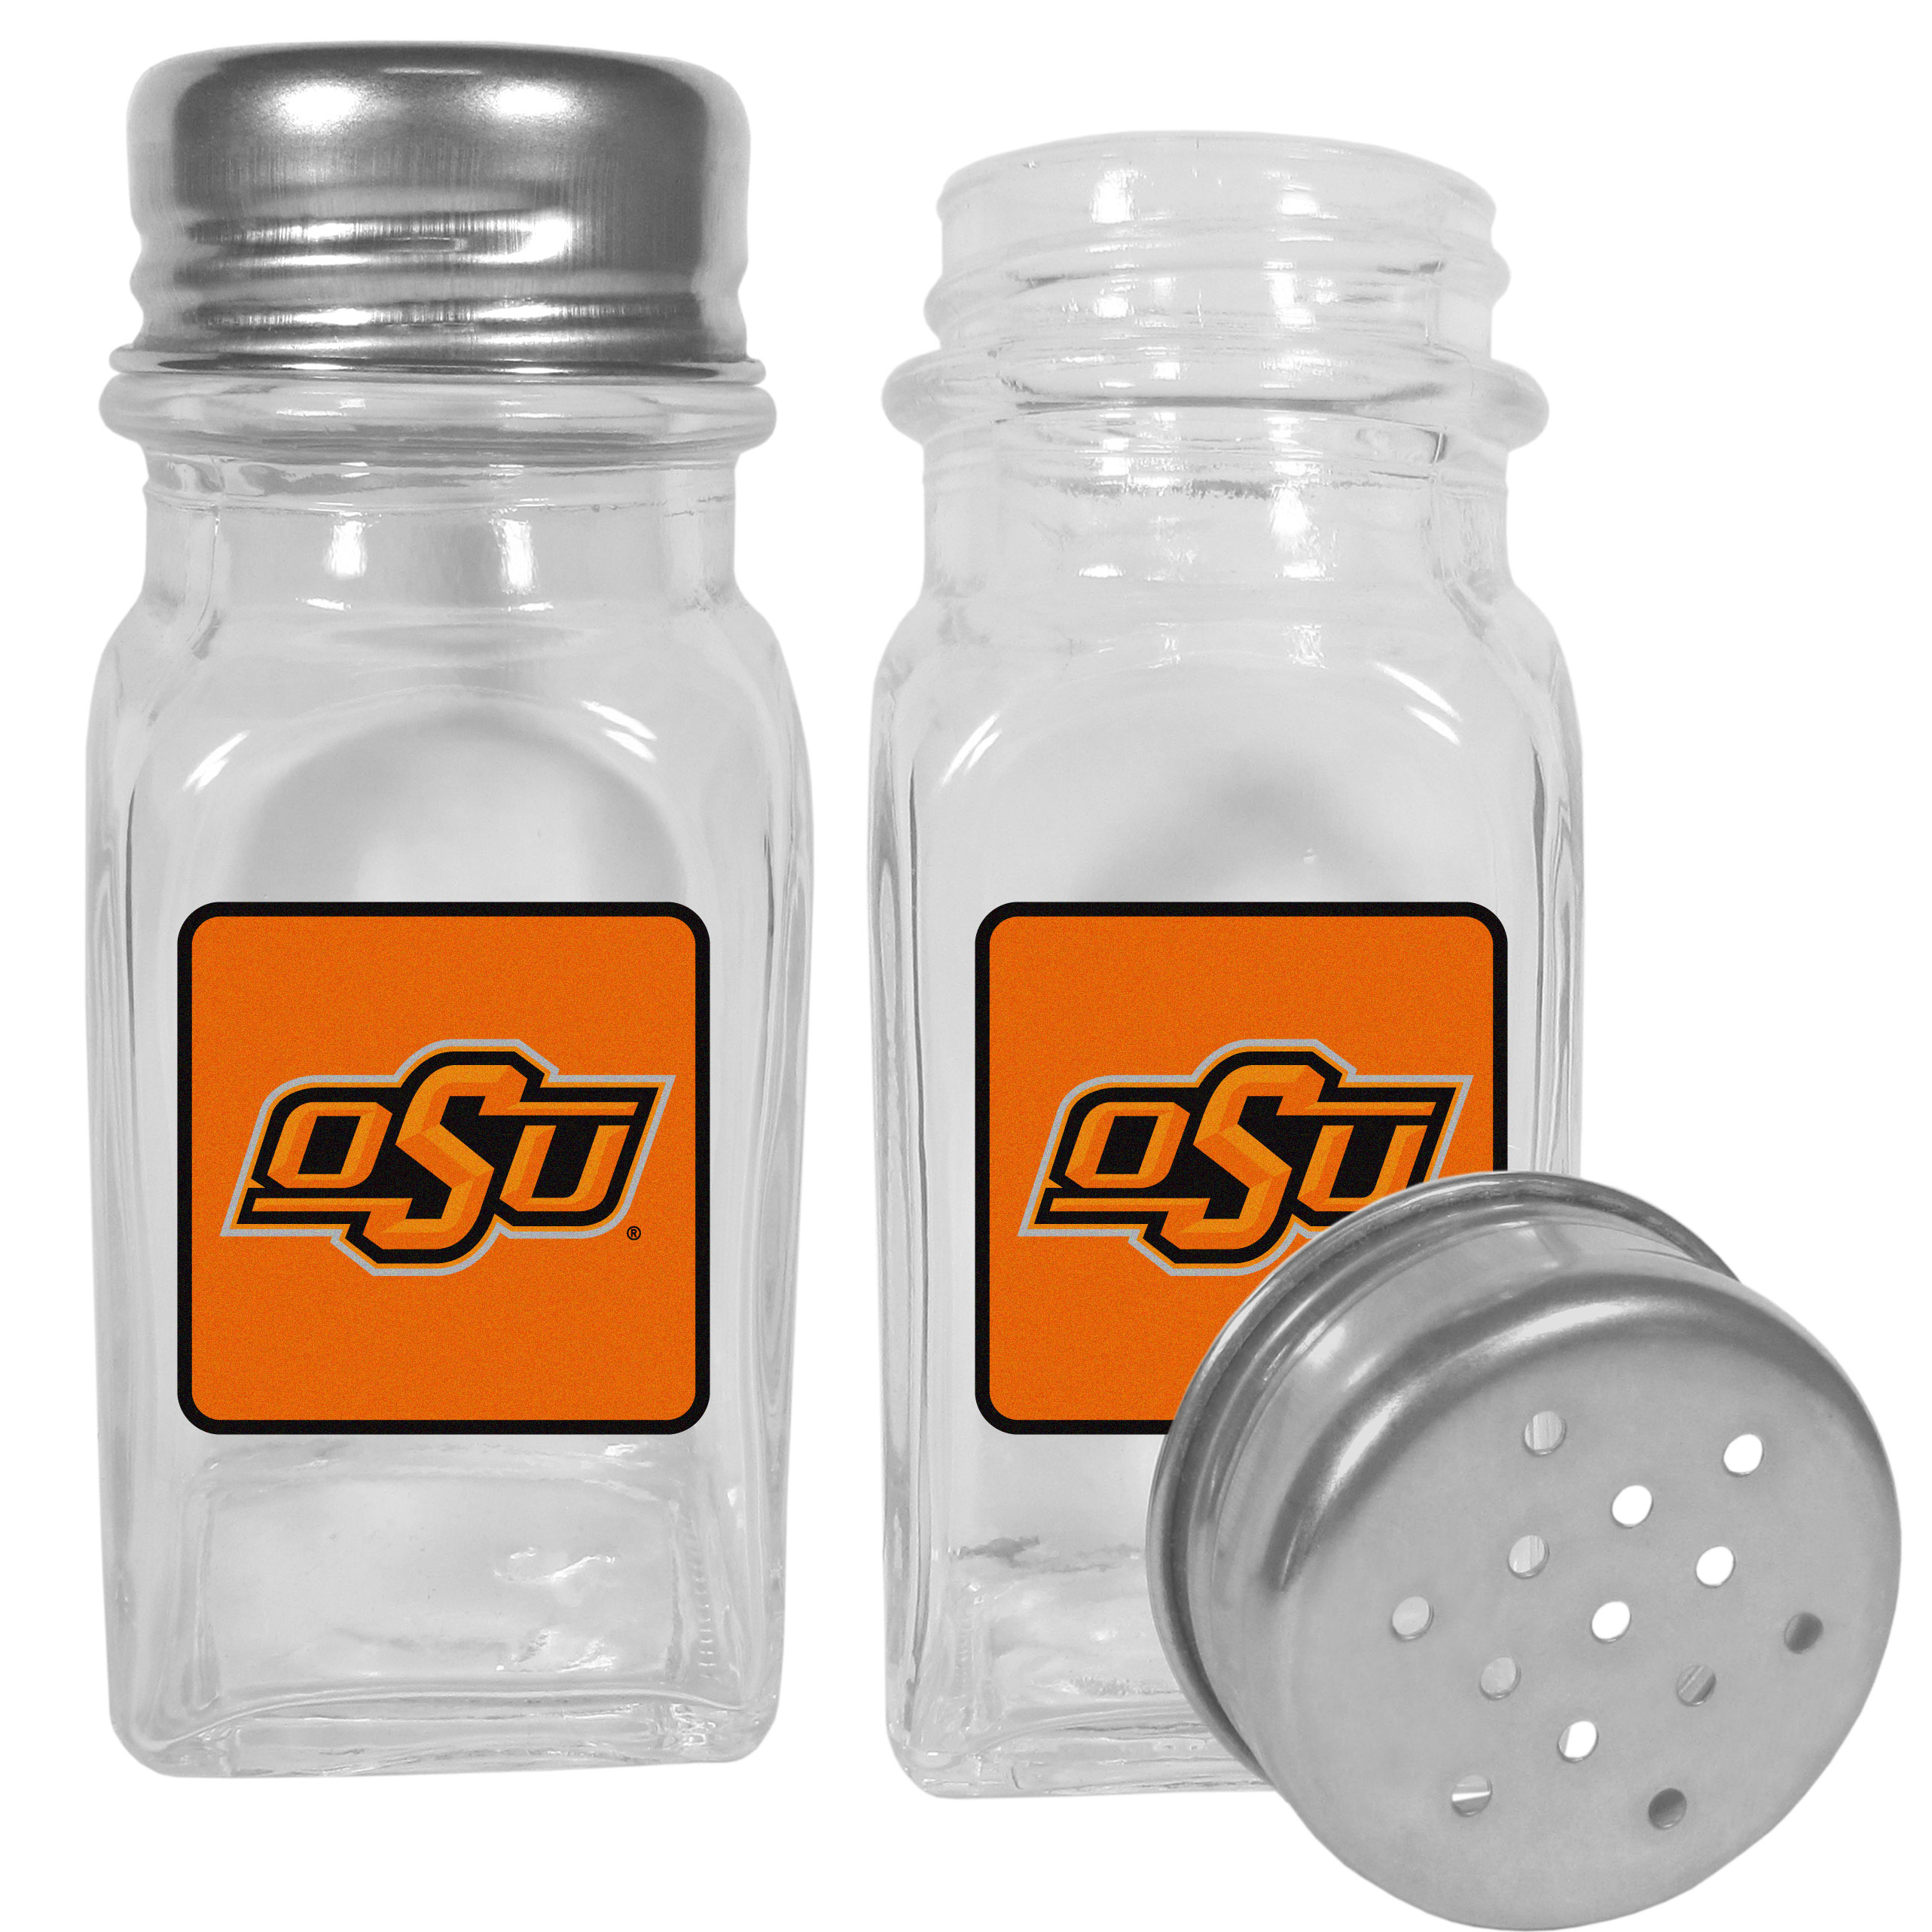 Oklahoma St. Cowboys Graphics Salt & Pepper Shaker - No tailgate party is complete without your Oklahoma St. Cowboys salt & pepper shakers featuring bright team logos. The diner replica salt and pepper shakers are glass with screw top lids. These team shakers are a great grill accessory whether you are barbecuing on the patio, picnicing or having a game day party.